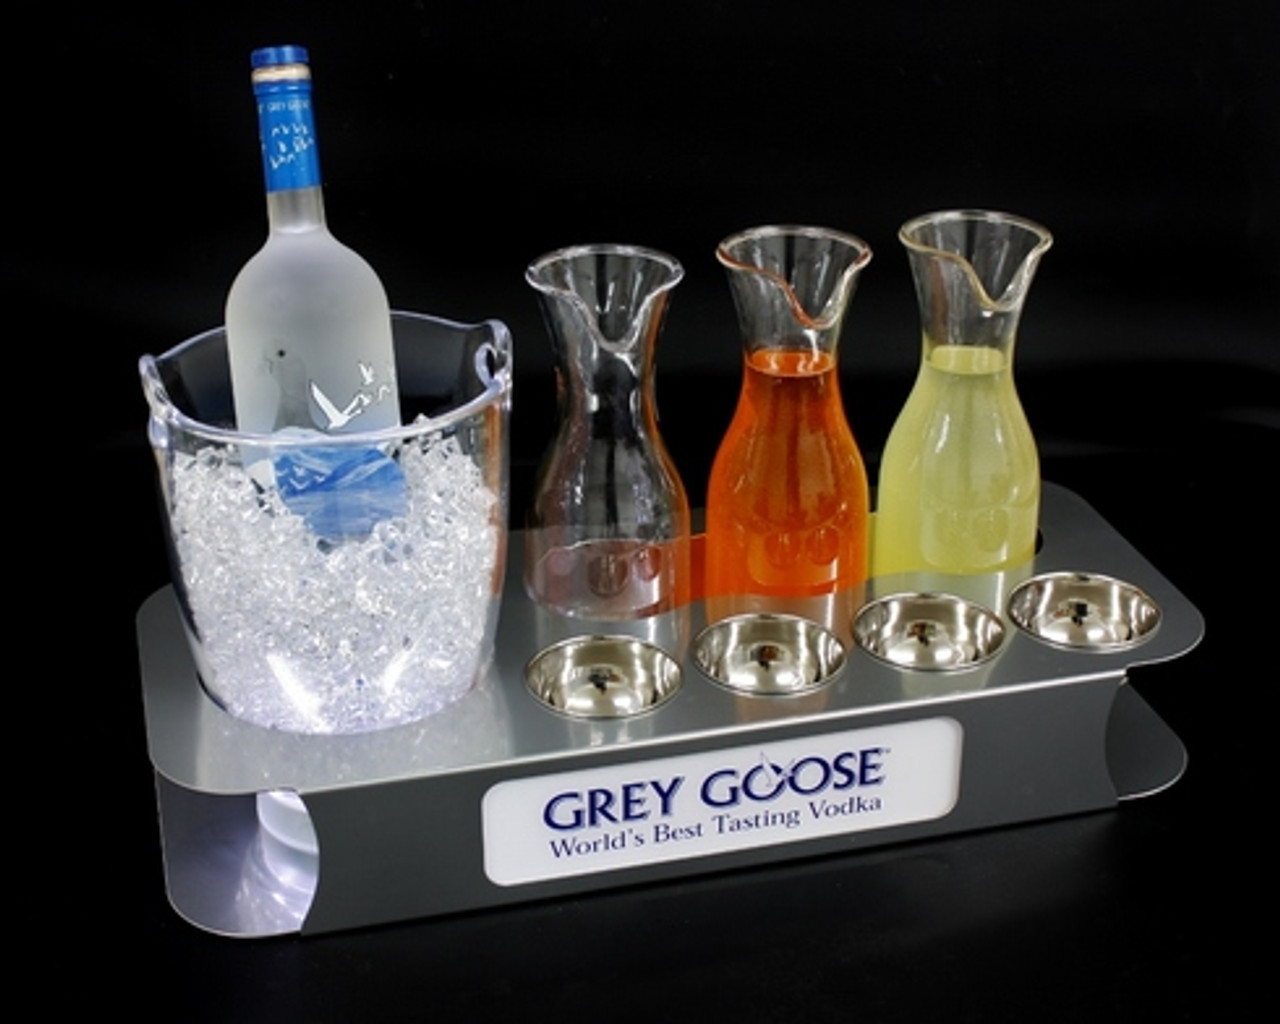 VIP, Name, changer, Print, ready, steel, Bottle service, Liquor,Champagne, Bottle, service,delivery,tray, kit, perfect serve, ice bucket, carafe, garnish, brand, logo, Pre made,available, in stock, Restaurant, Nightclub,Bar, Nightclubshop